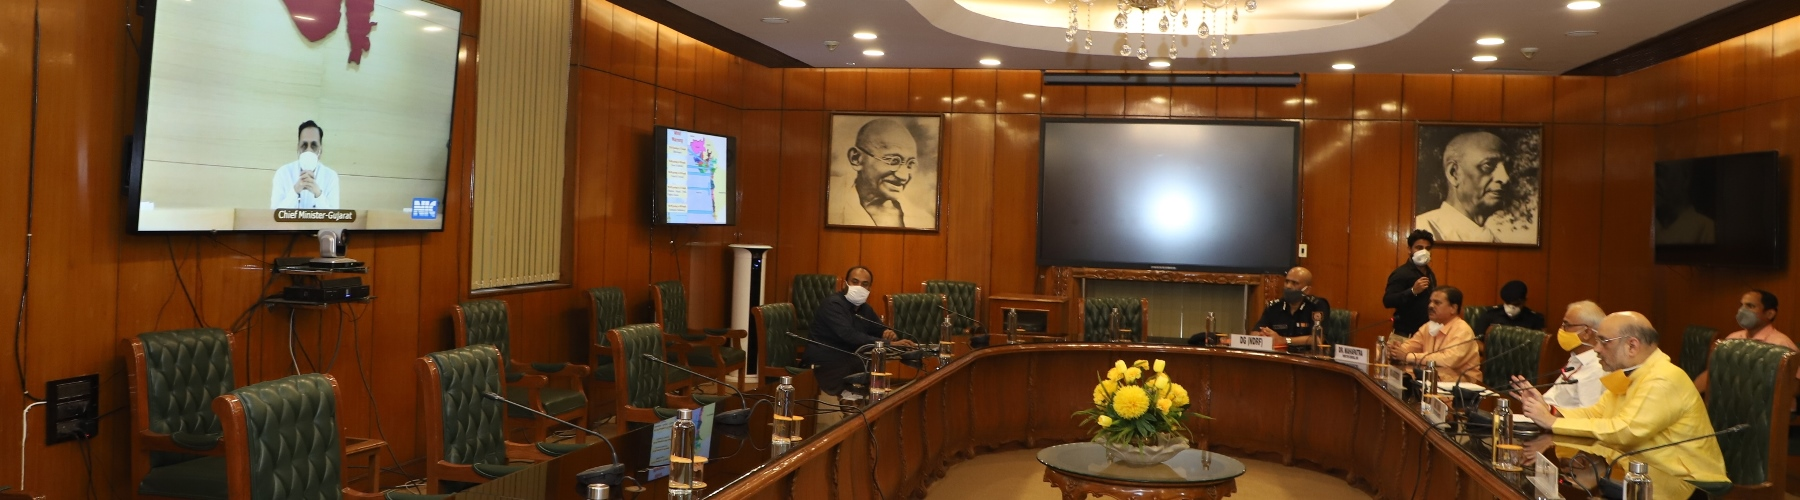 Union Home Minister, Shri Amit Shah held a Video Conference meeting with Chief Minister of Gujarat, Shri Vijay Rupani, to assure all Central help in view of impending Cyclone in Arabian Sea, in New Delhi, on 01.06.2020